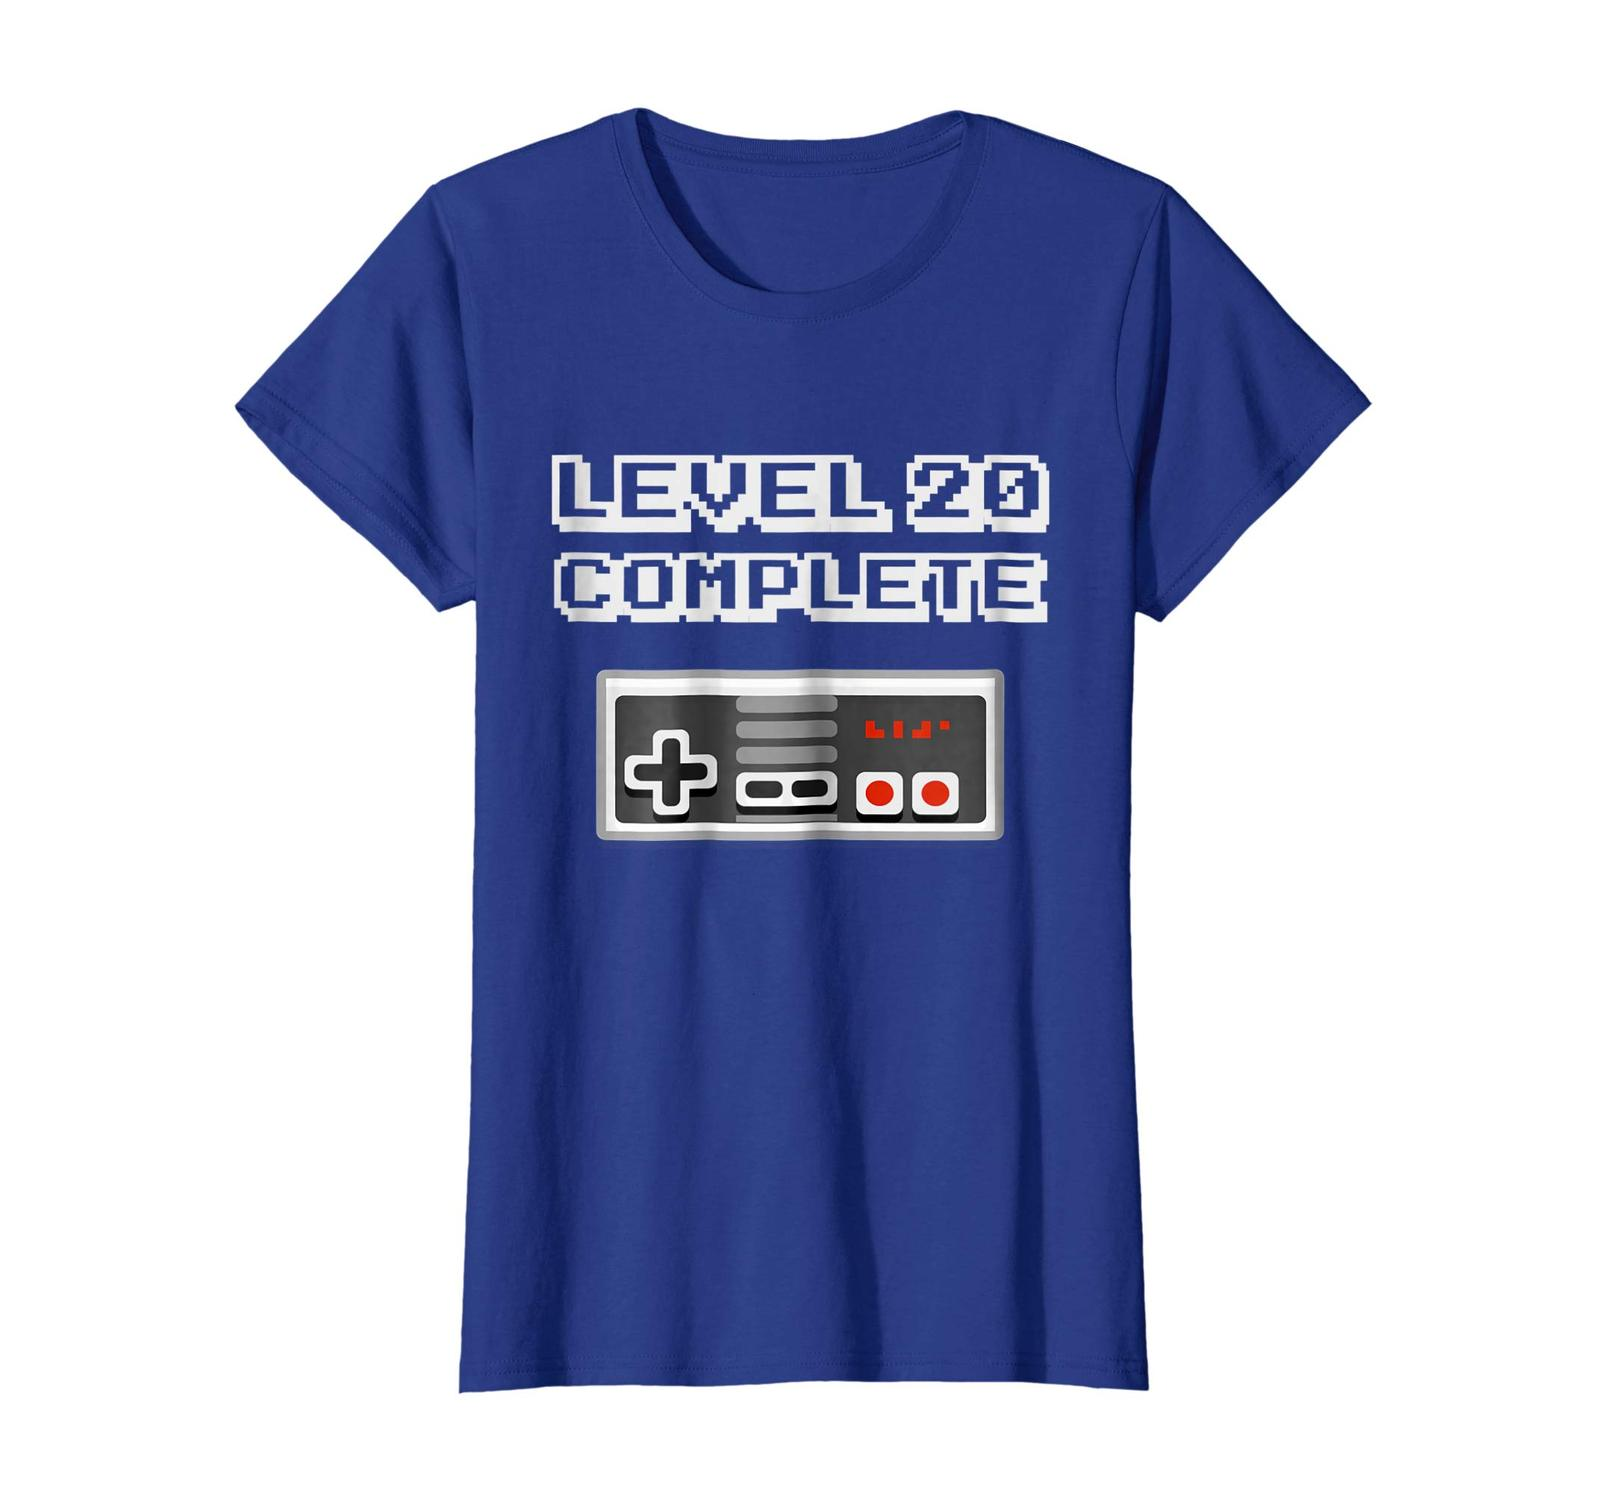 New Shirts - Level 20 Complete Retro Video Gamer 20th Birthday Gift Shirt Wowen image 3